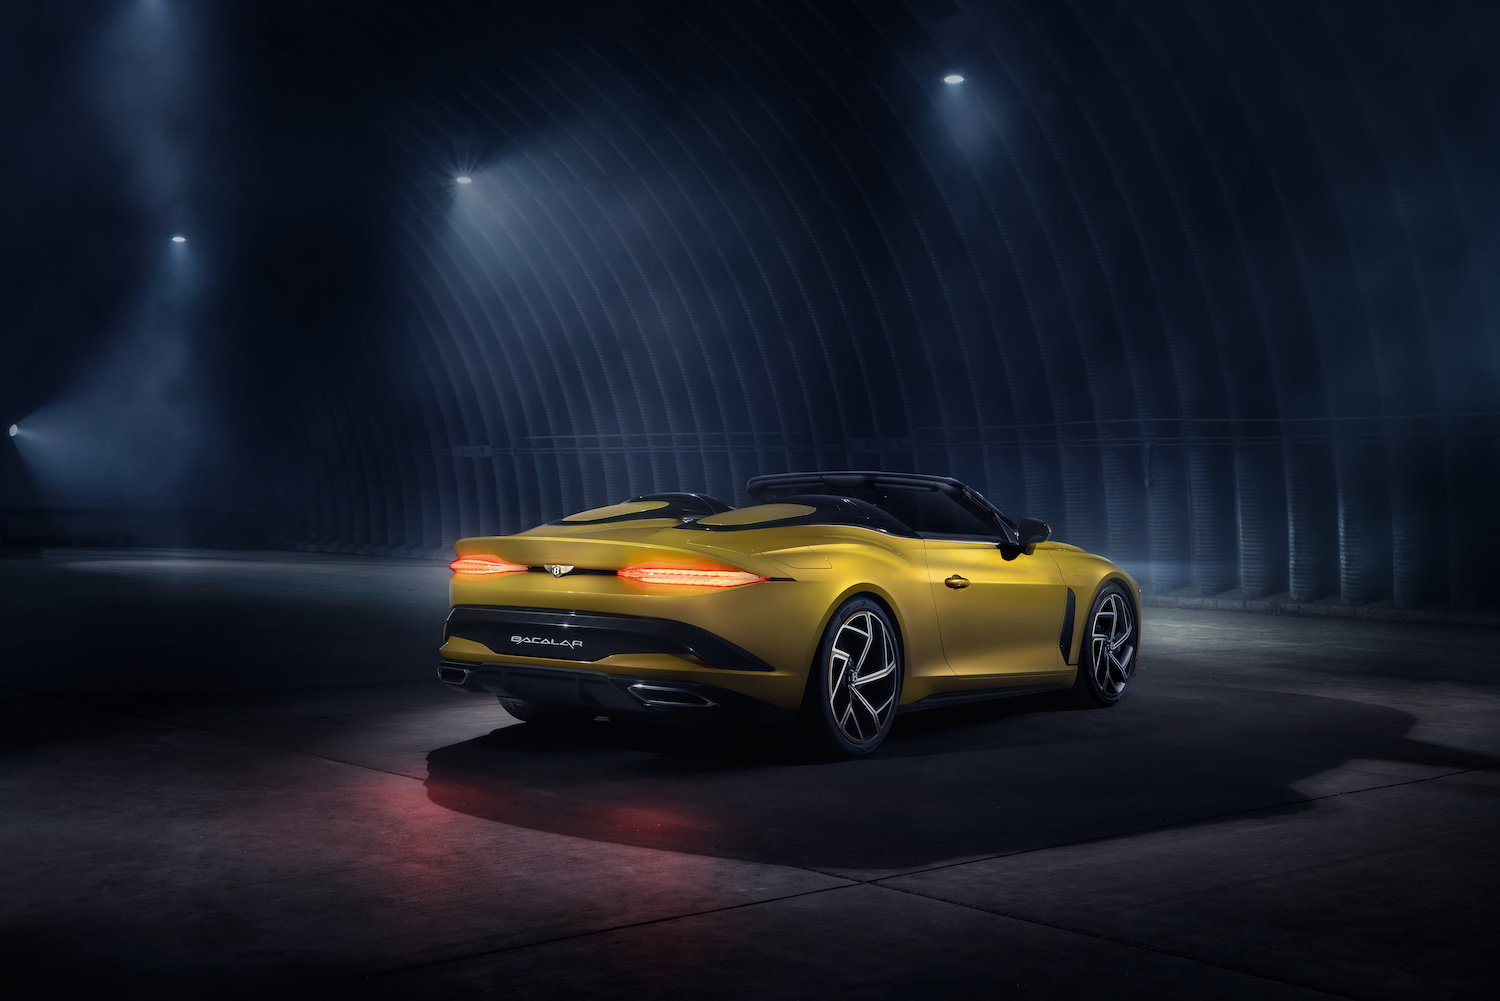 2020 mulliner bacalar barchetta rear three-quarter